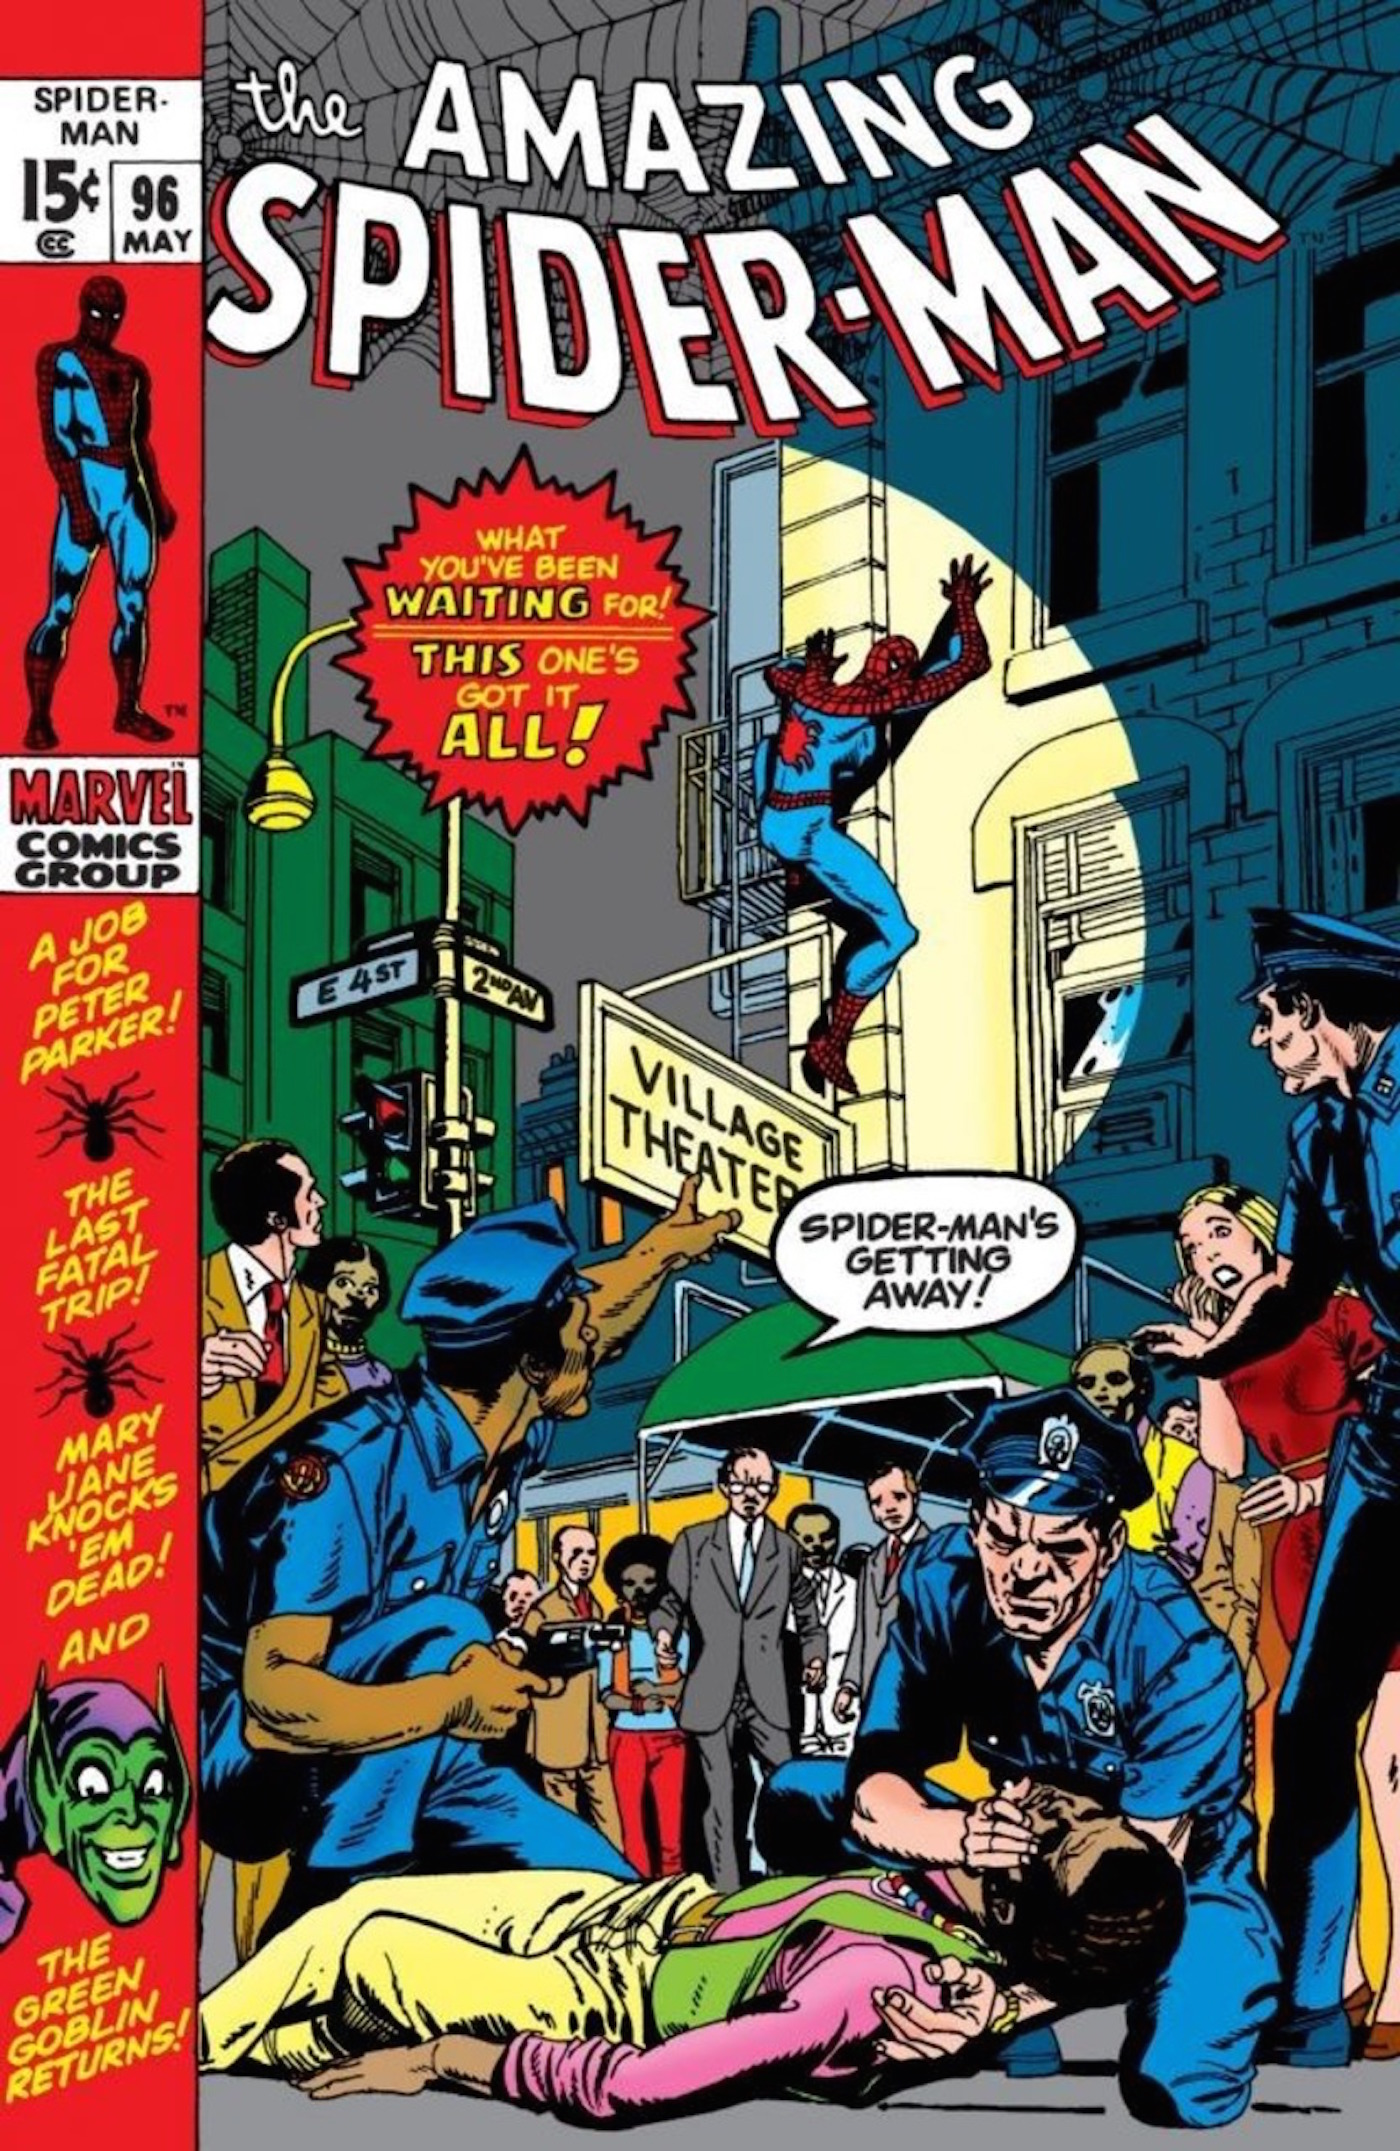 Comic Book Cover Artist Wanted : Most groundbreaking comic book covers of all time